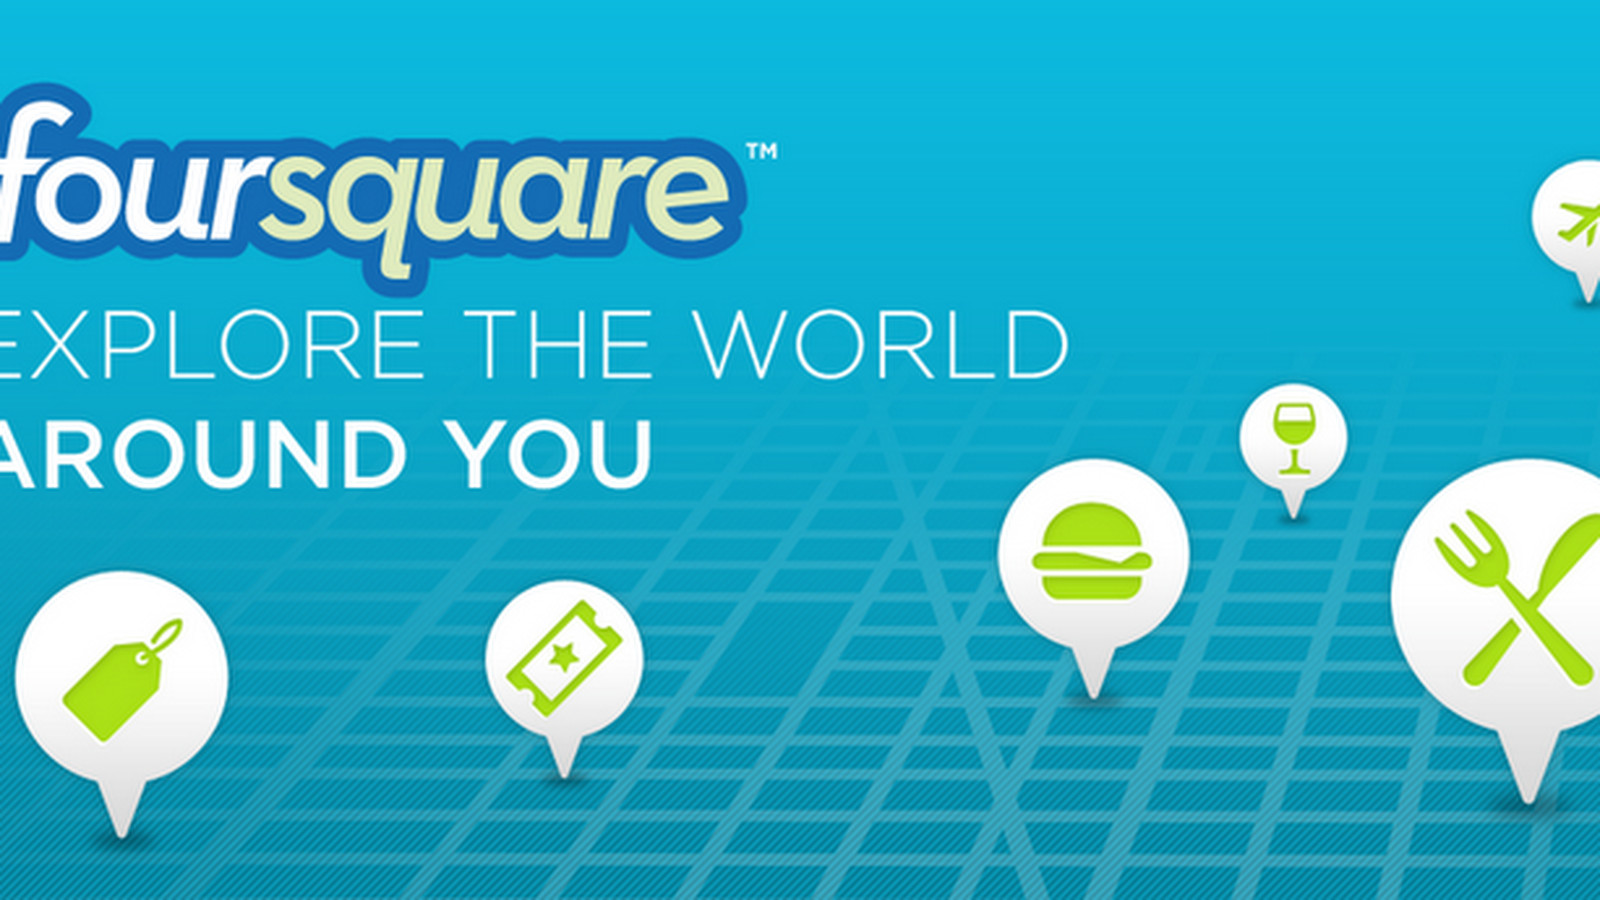 Foursquare updates Android app with NFC support